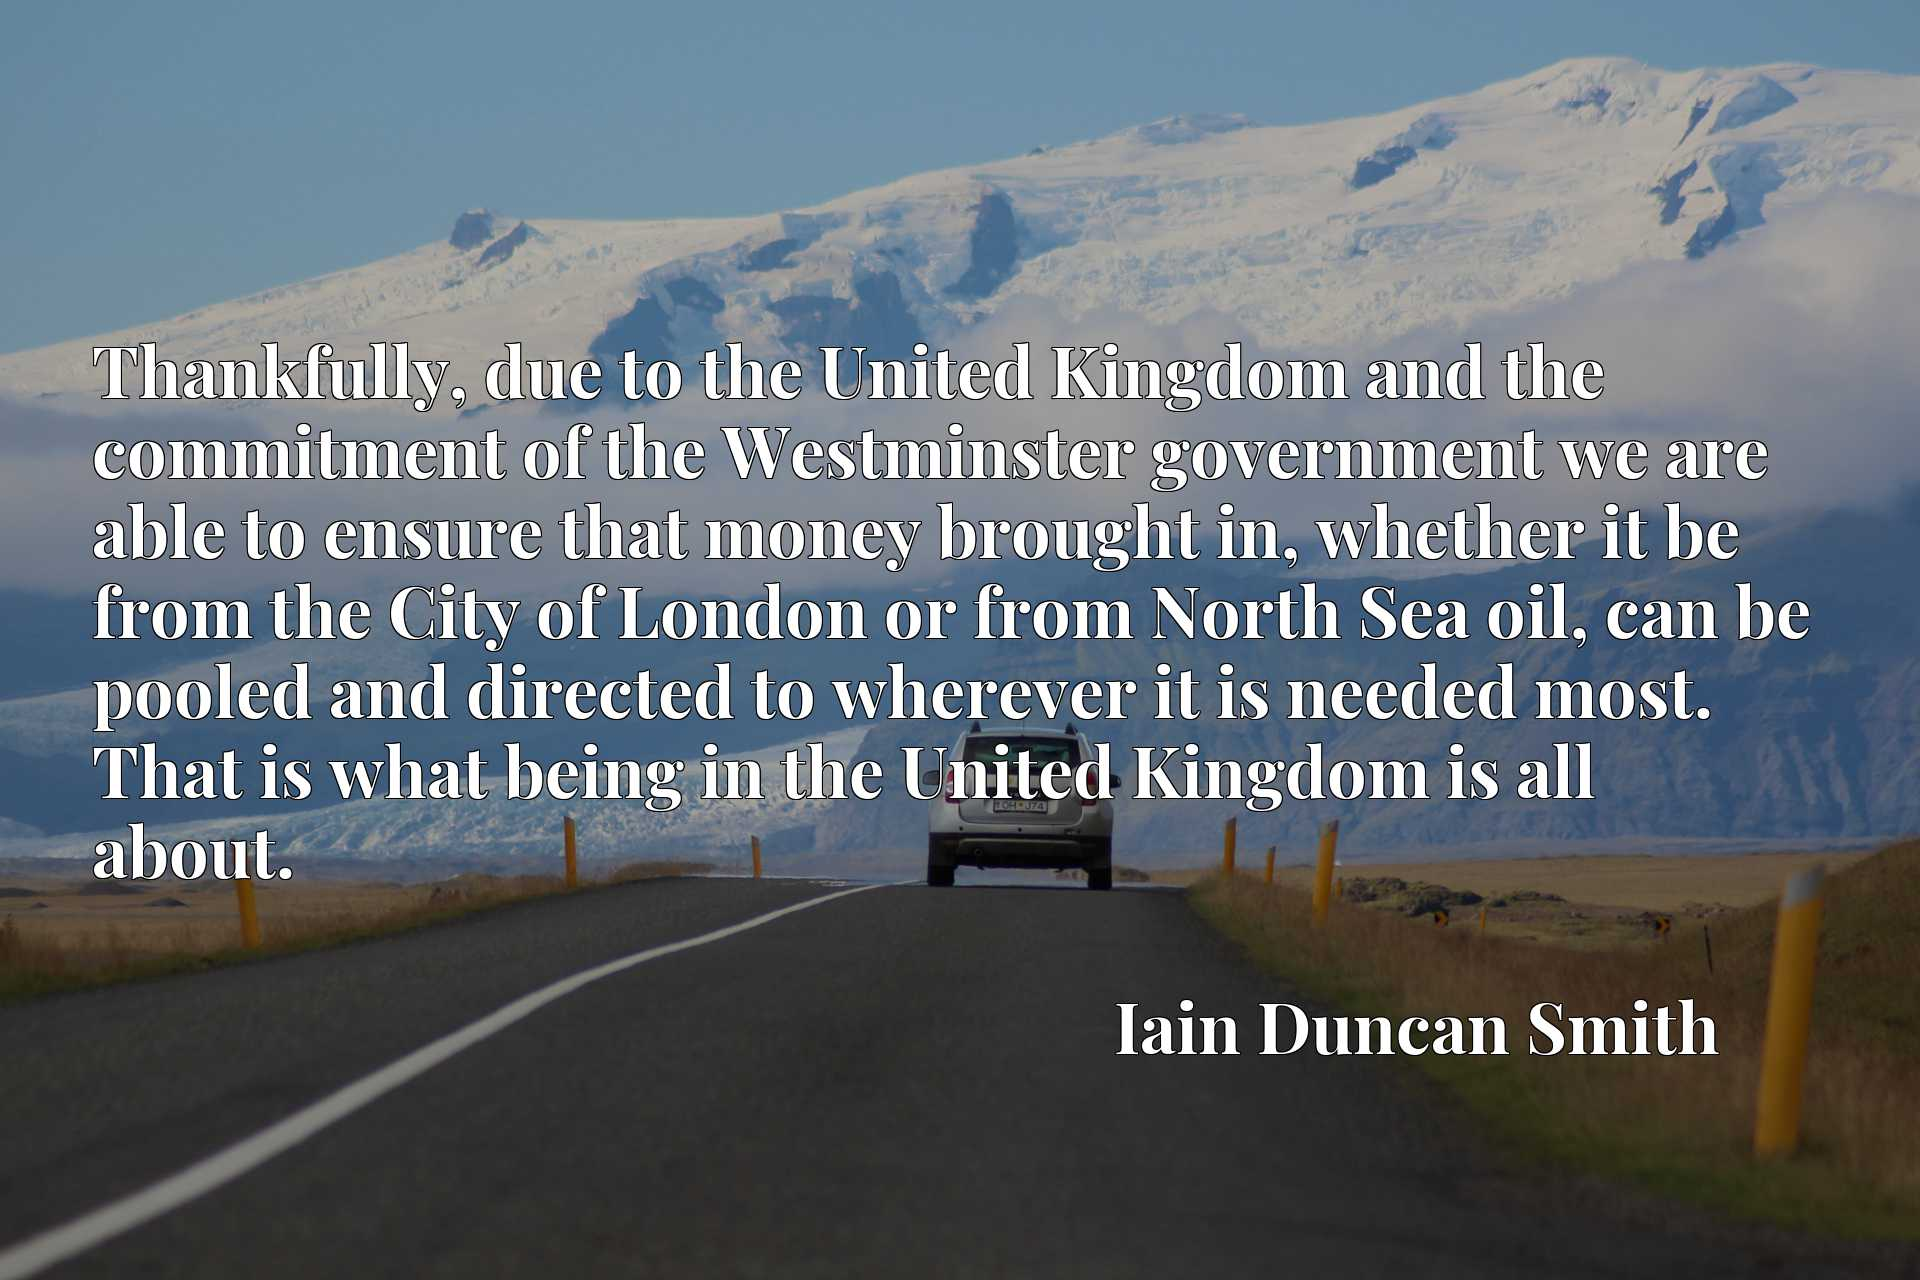 Thankfully, due to the United Kingdom and the commitment of the Westminster government we are able to ensure that money brought in, whether it be from the City of London or from North Sea oil, can be pooled and directed to wherever it is needed most. That is what being in the United Kingdom is all about.